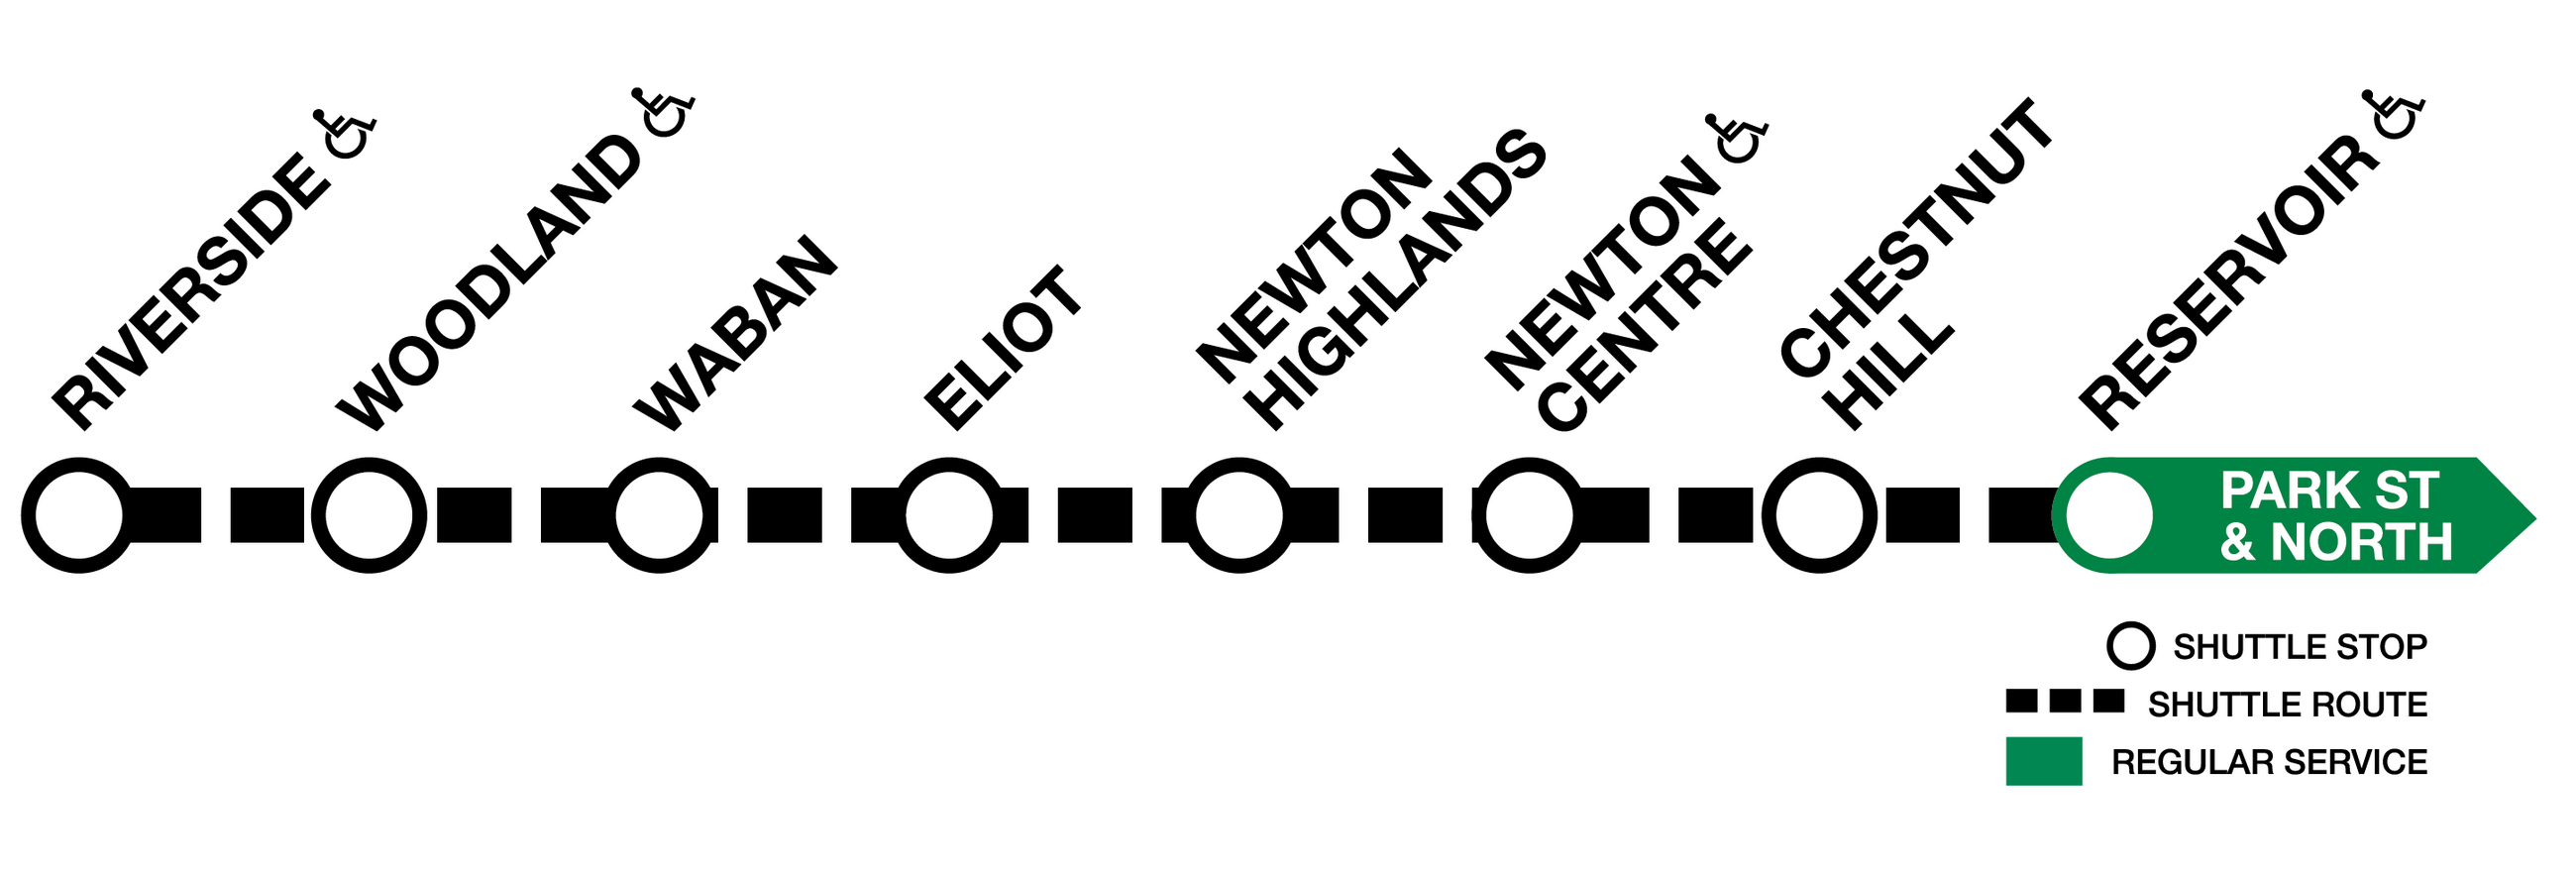 Green Line D branch graphic showing bus shuttle service between Reservoir and Riverside.